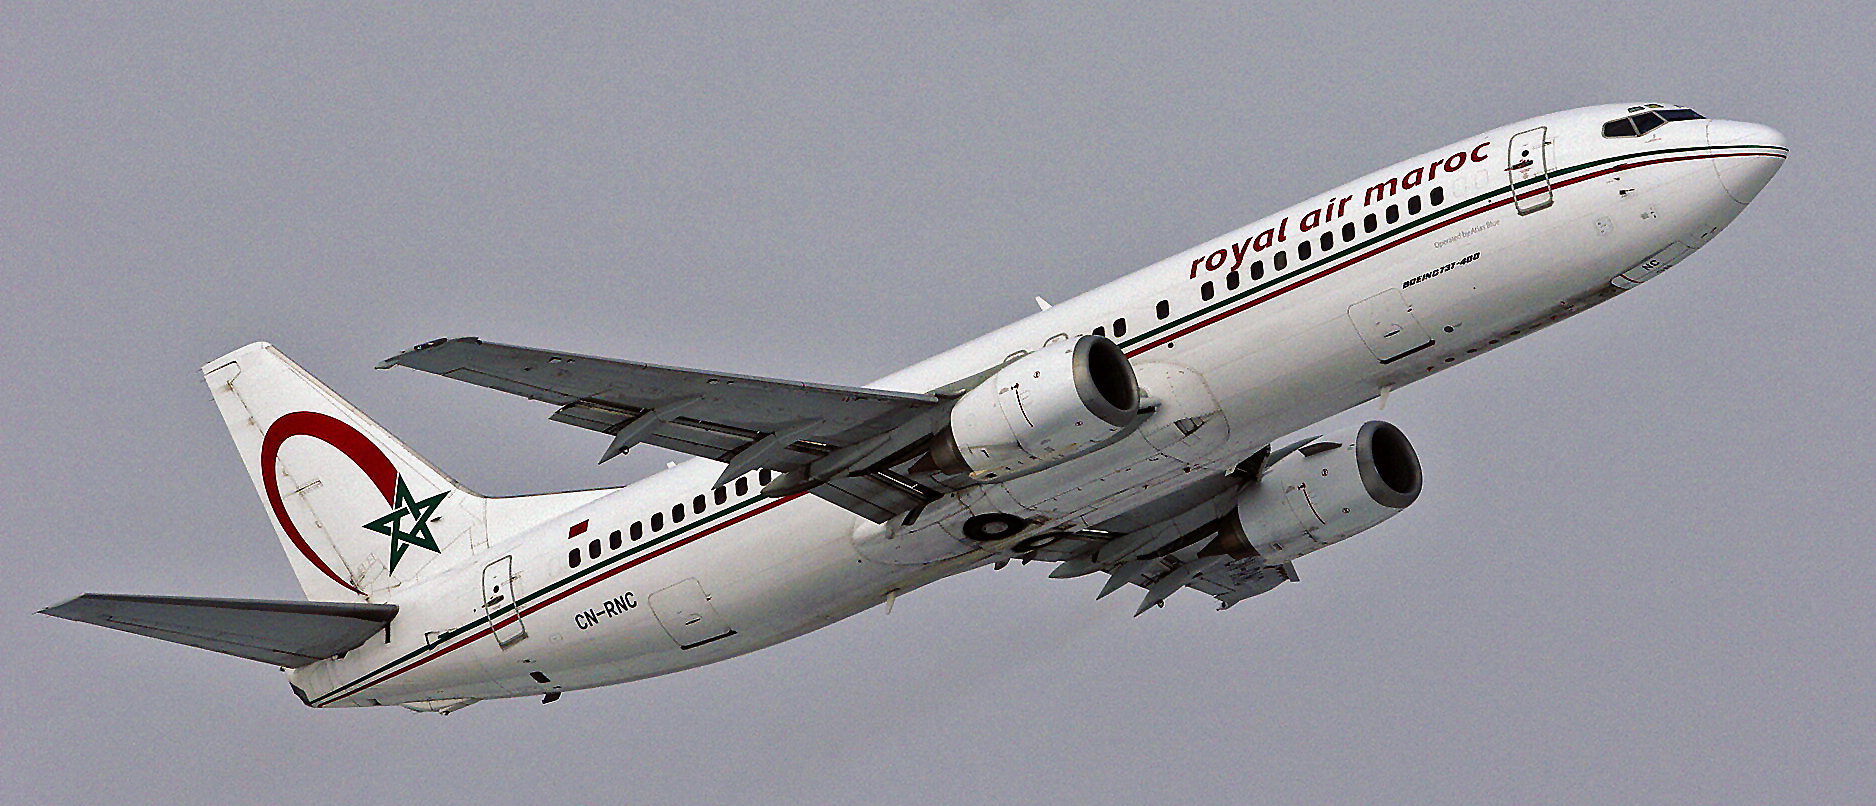 Royal Air Maroc / Operated by Atlas Blue